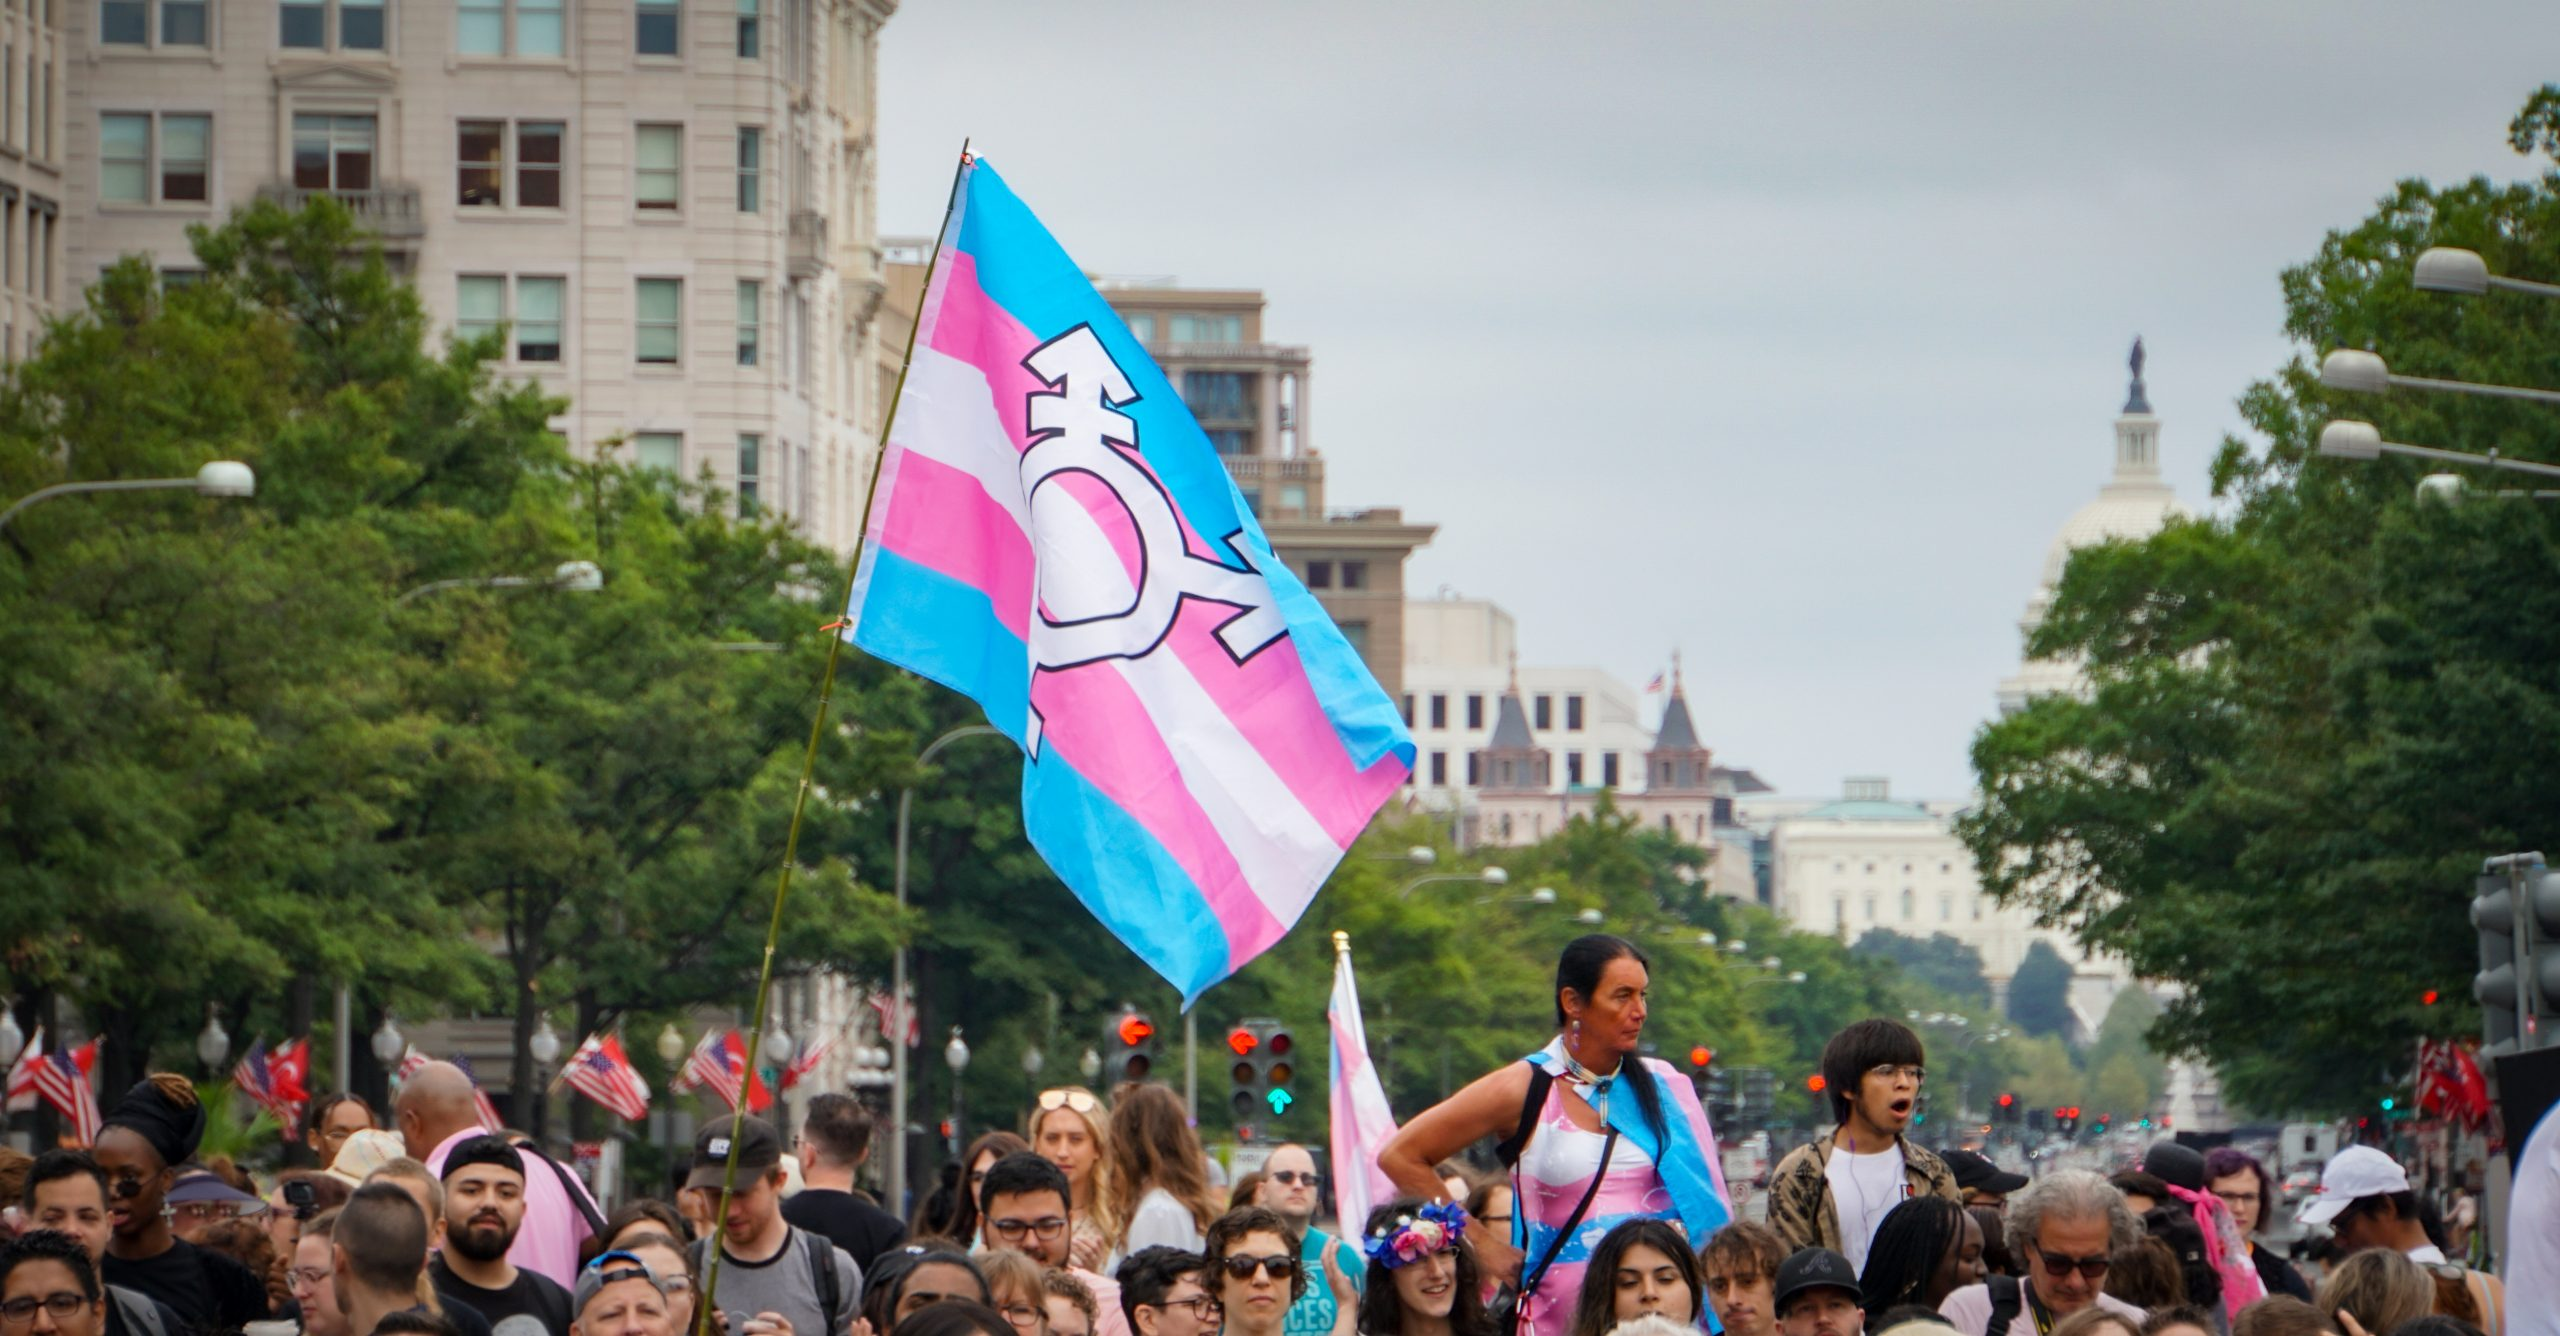 Protest with transgender flag; California travel ban